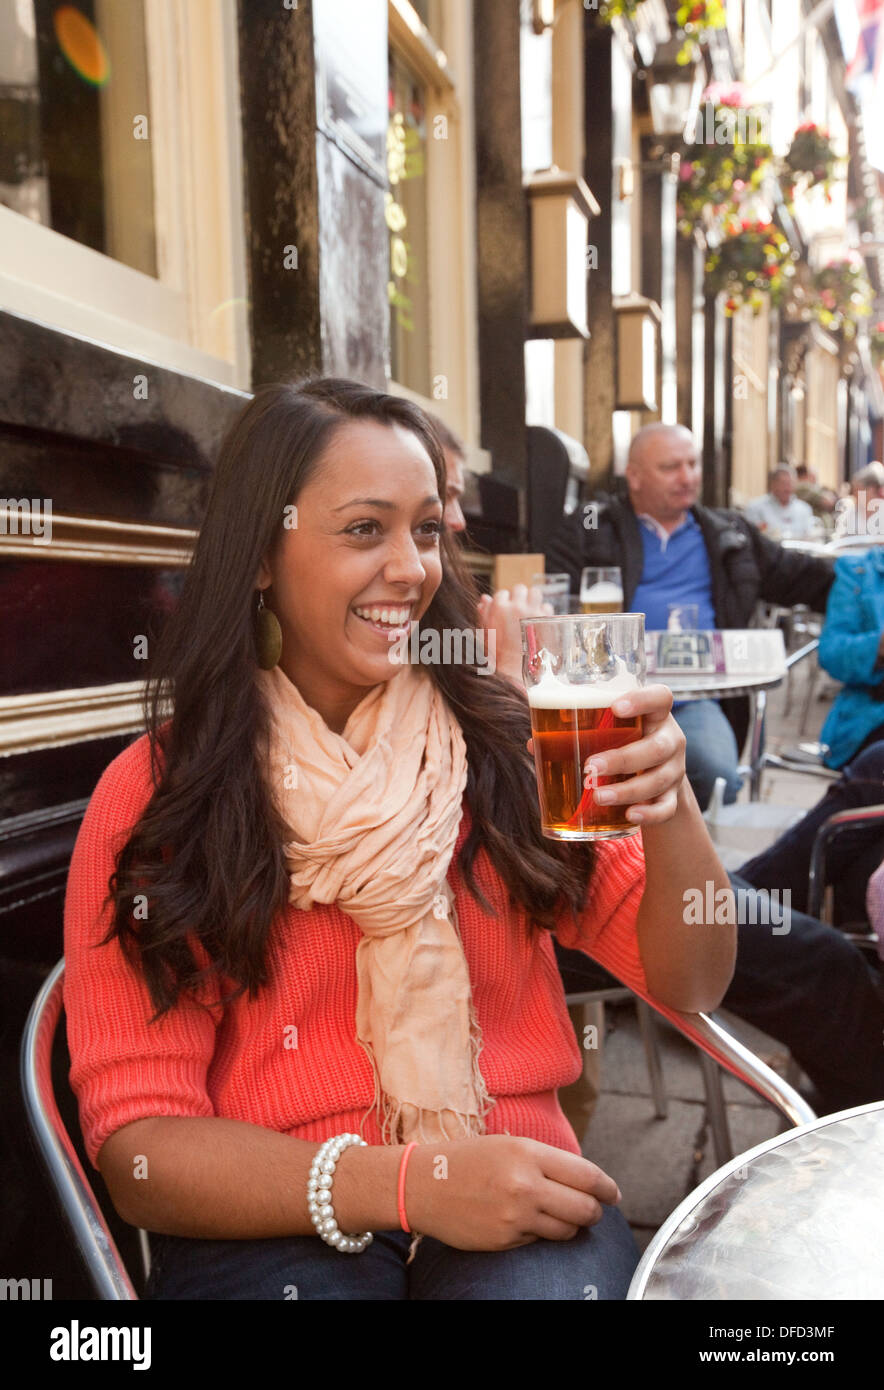 Young woman enjoying drinking a pint of beer in a pub, The Gardeners Arms, Norwich, Norfolk, England UK - Stock Image